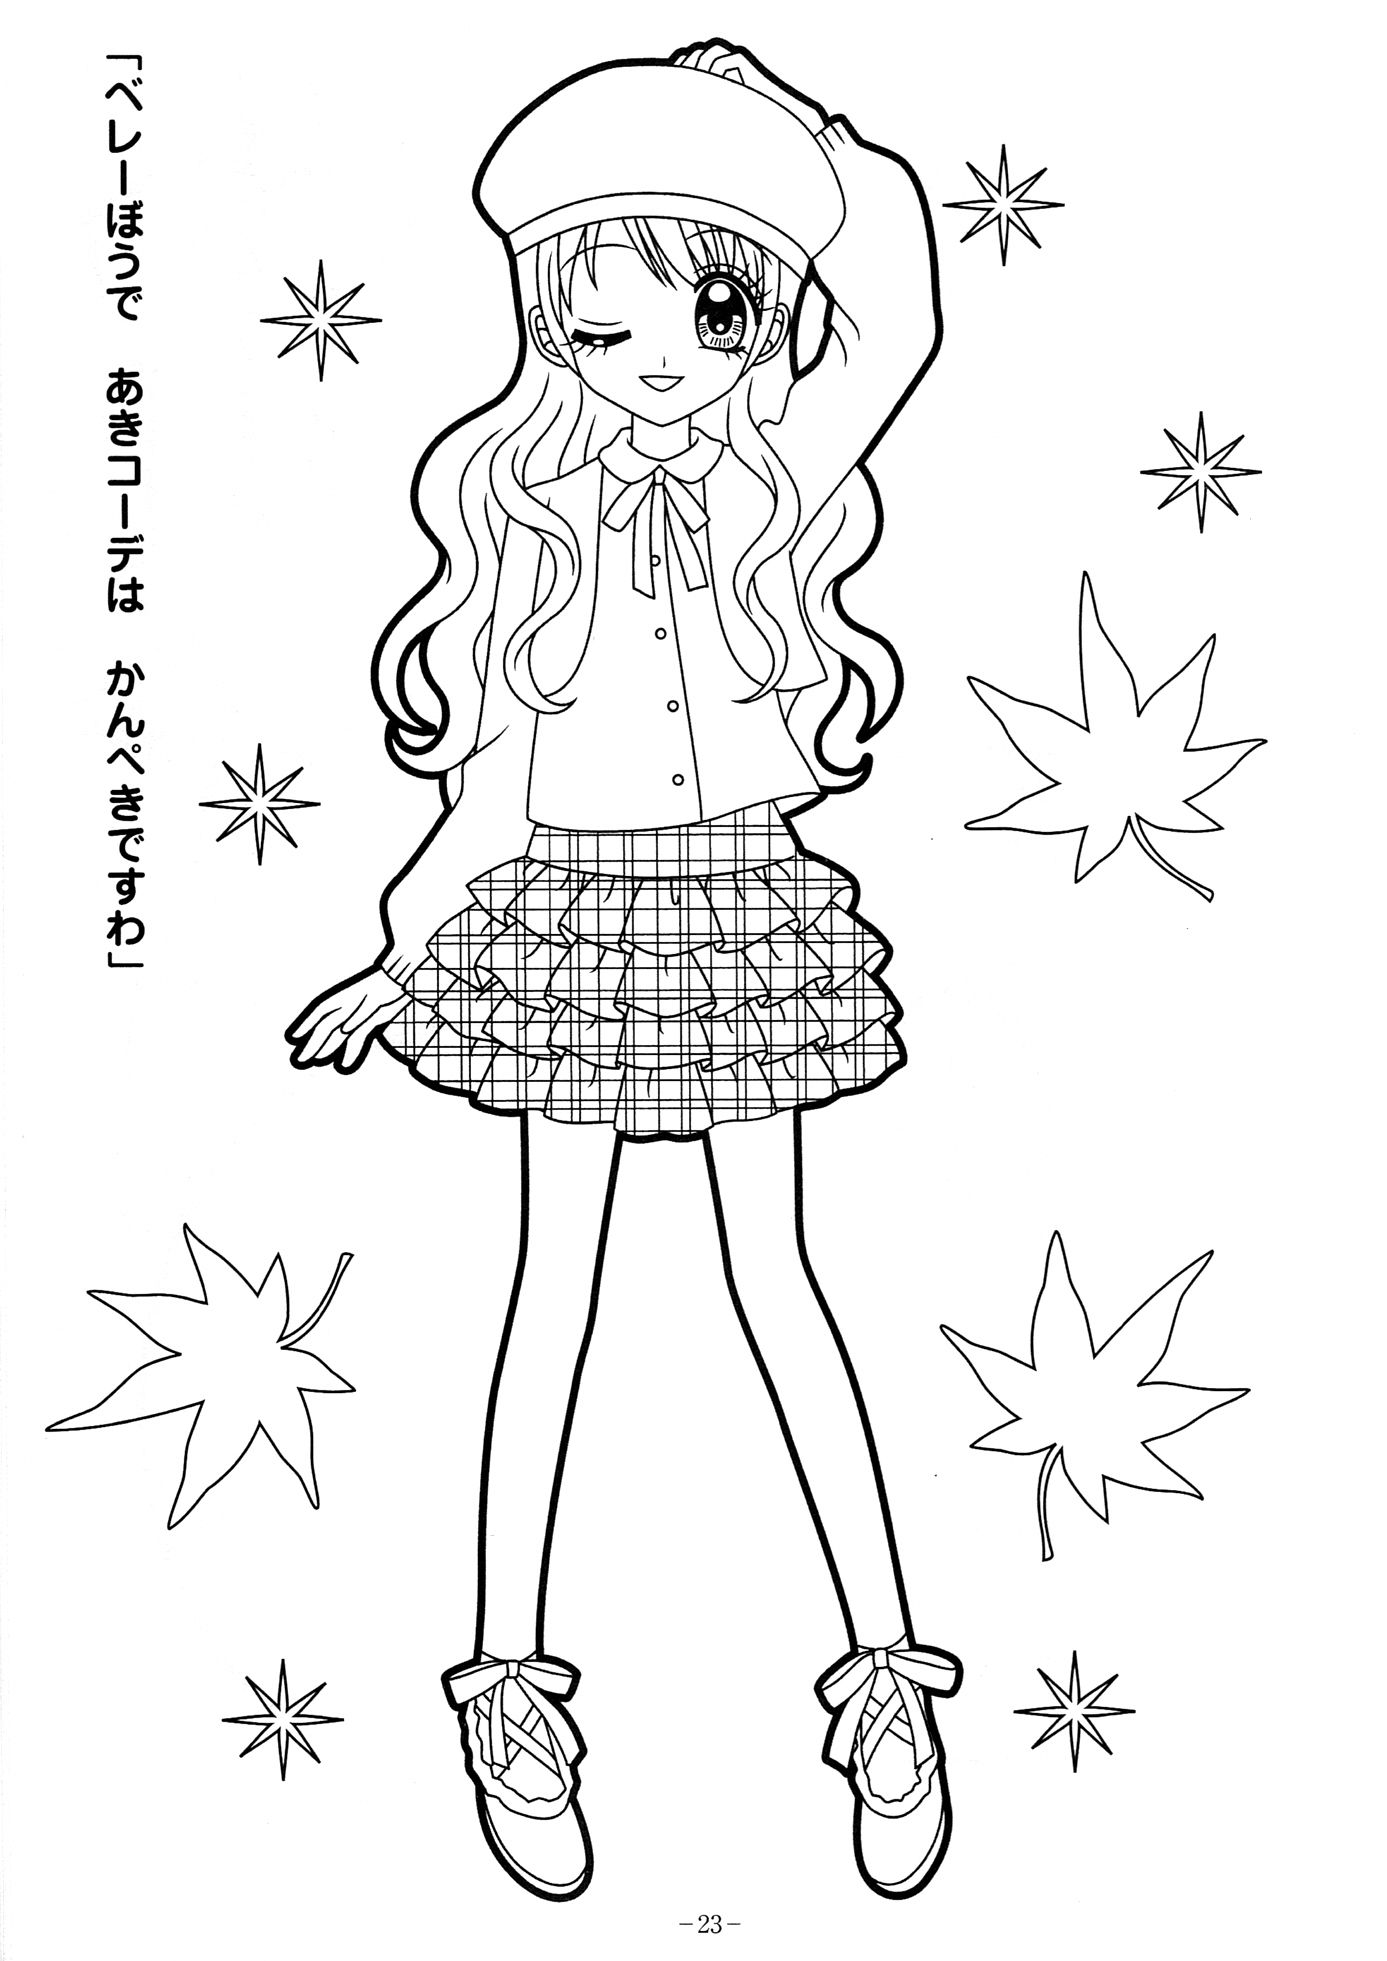 anime kawaii girl coloring pages kawaii coloring pages at getdrawings free download kawaii anime pages coloring girl